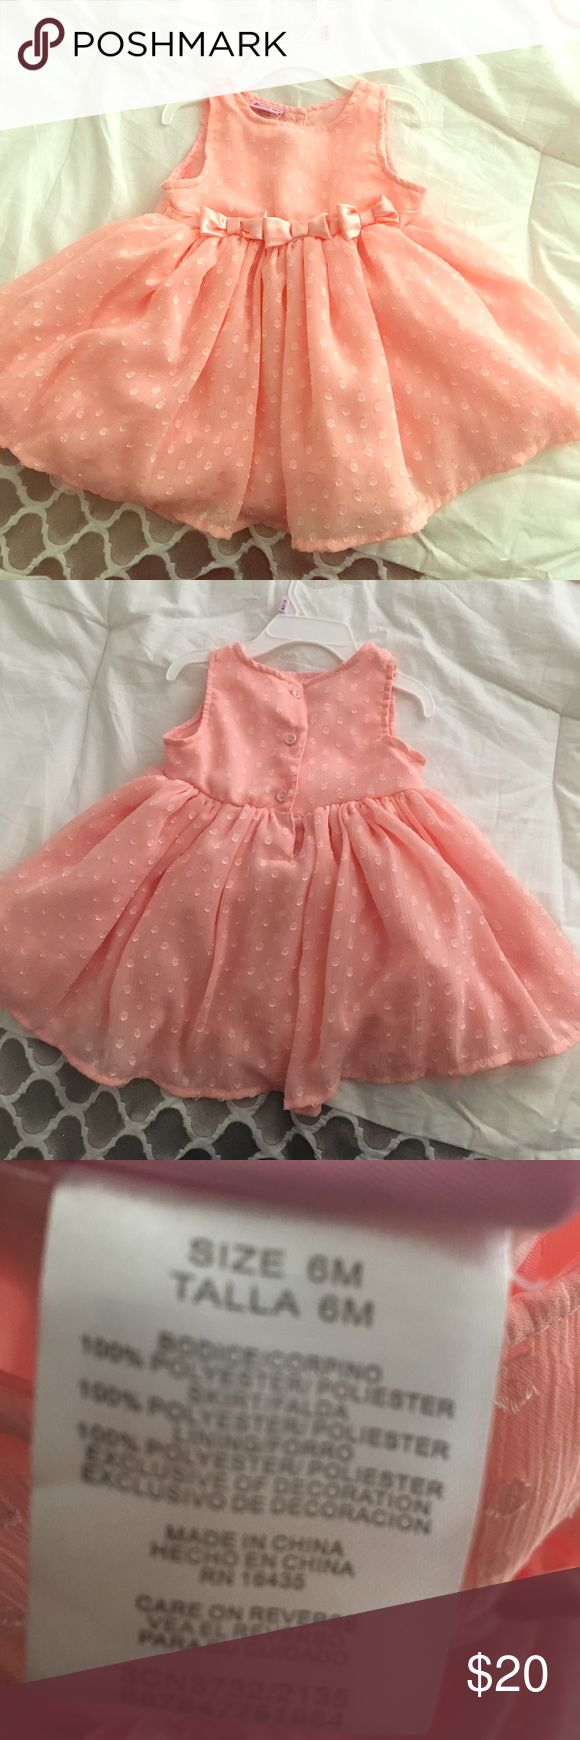 Baby Dress Worn once! Beautiful pink color with bows. Comes with a white faux fur jacket Dresses